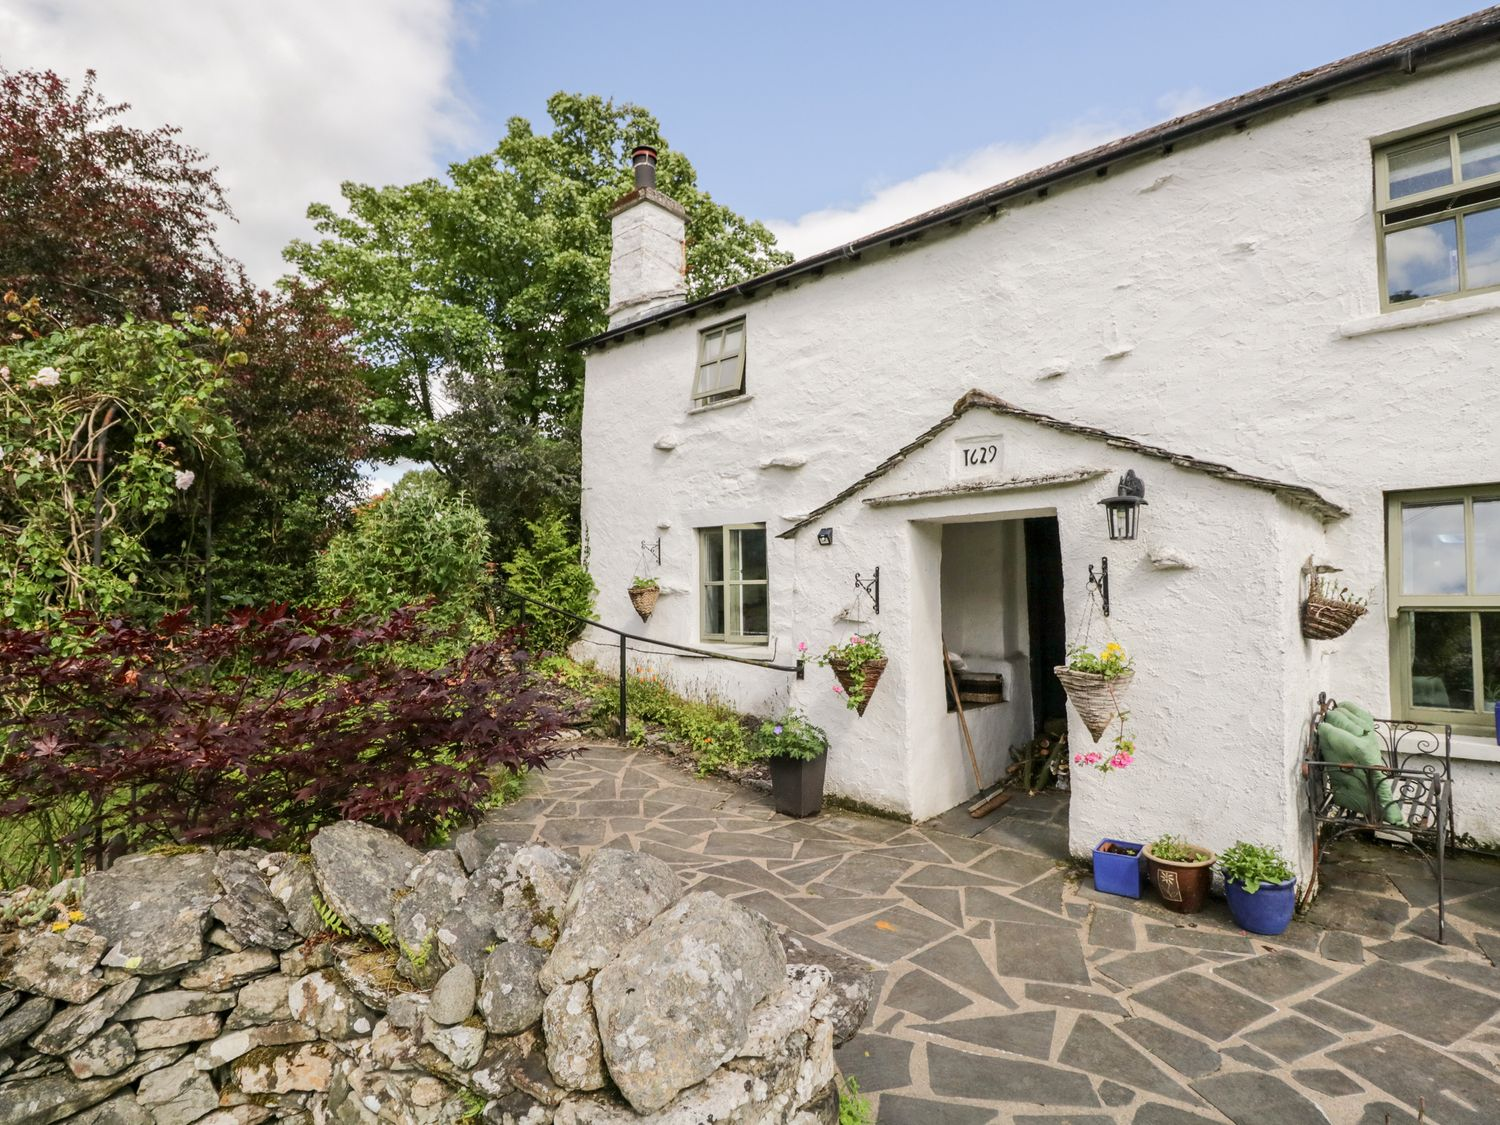 Nook Cottage in Underbarrow near Kendal - sleeps 4 people